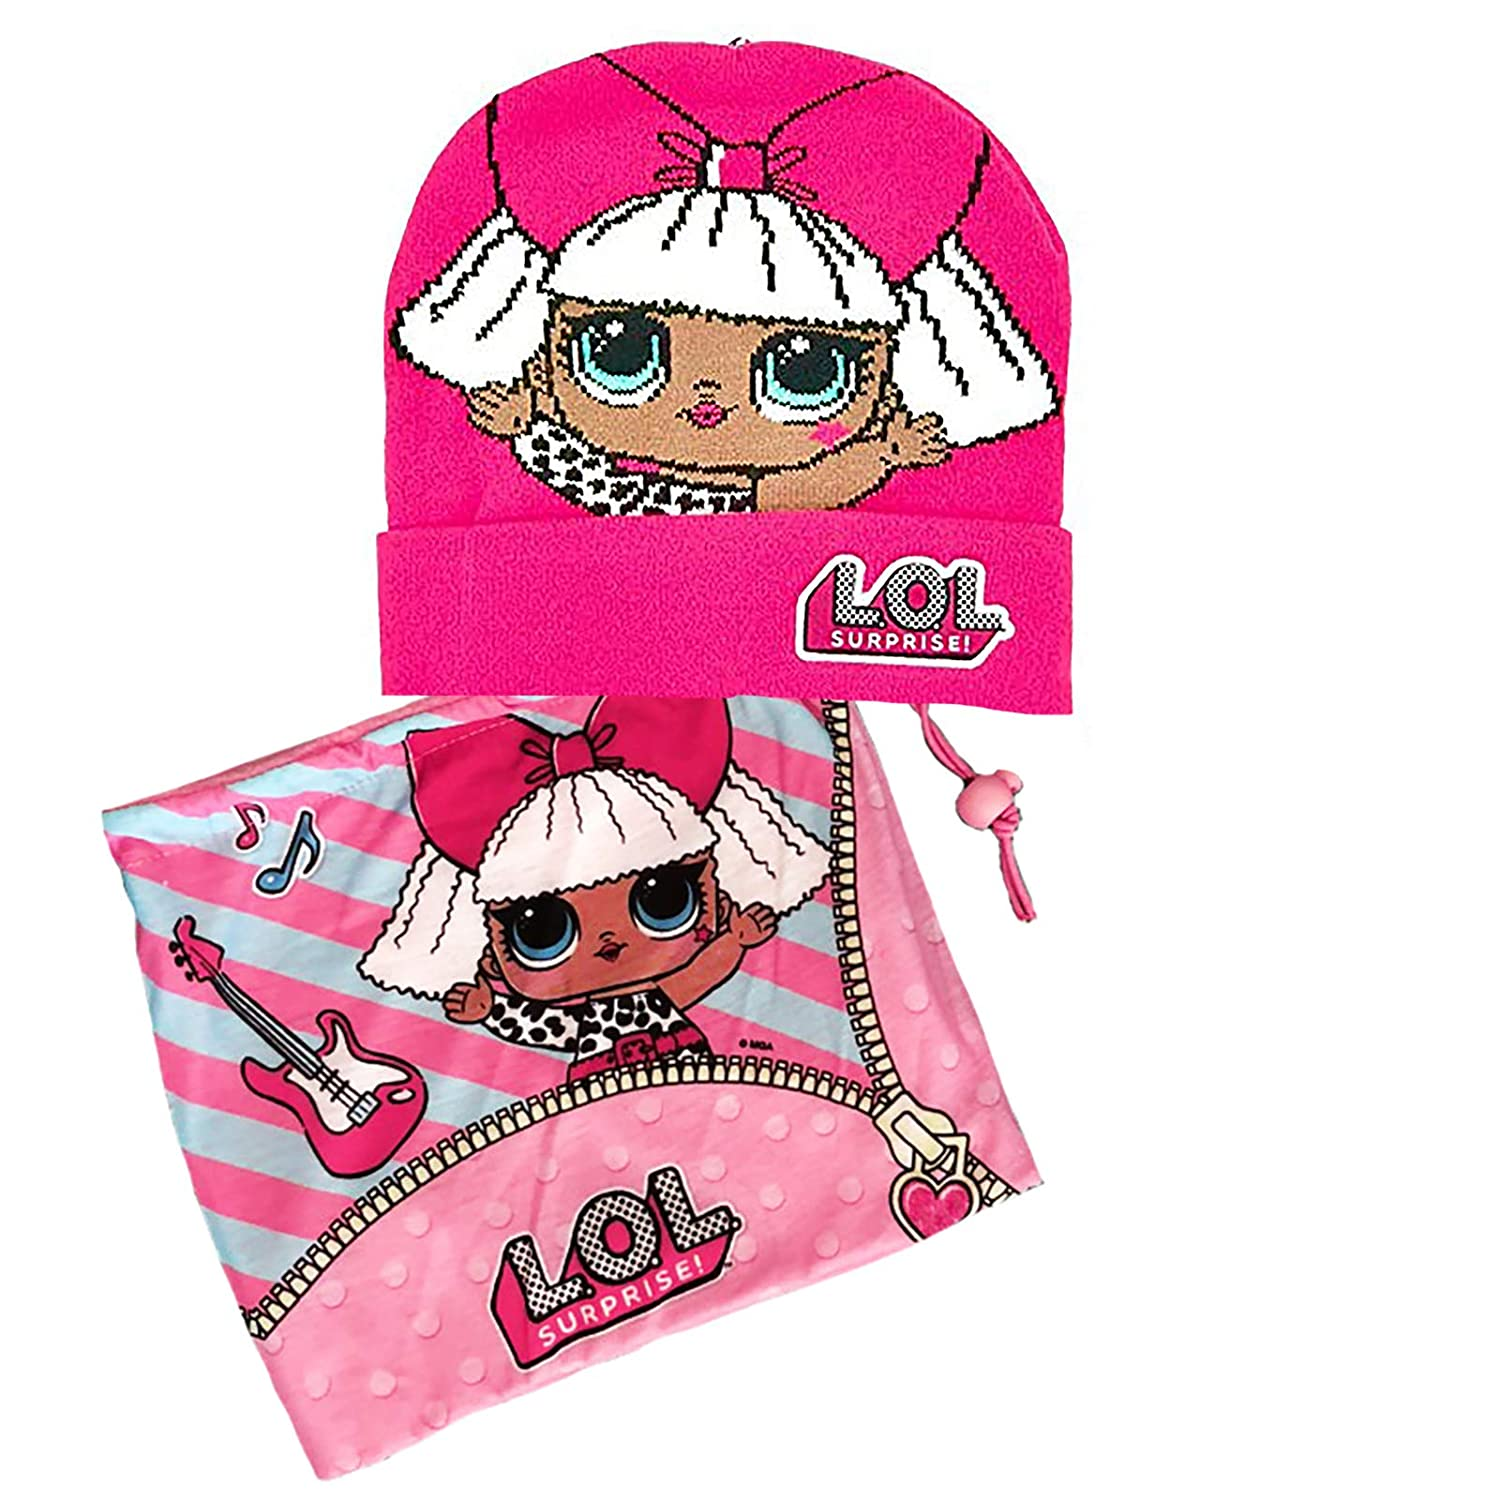 Hat /& Glove Set Pink Rosa Acceso 54 Lol Surprise Girls Scarf